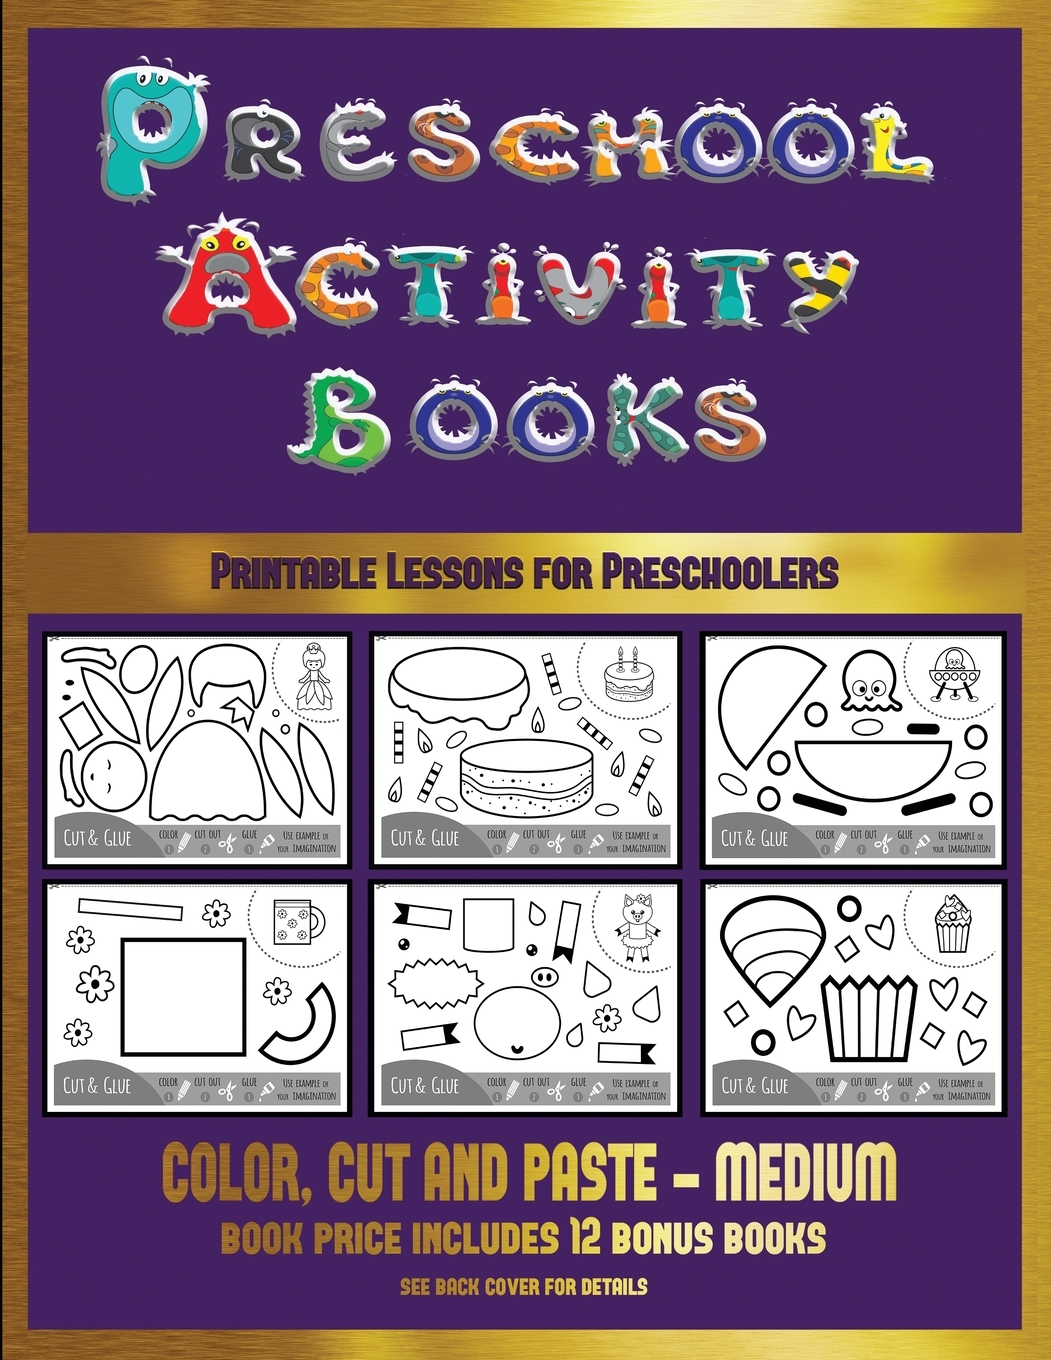 Printable Lessons For Preschoolers Printable Lessons For